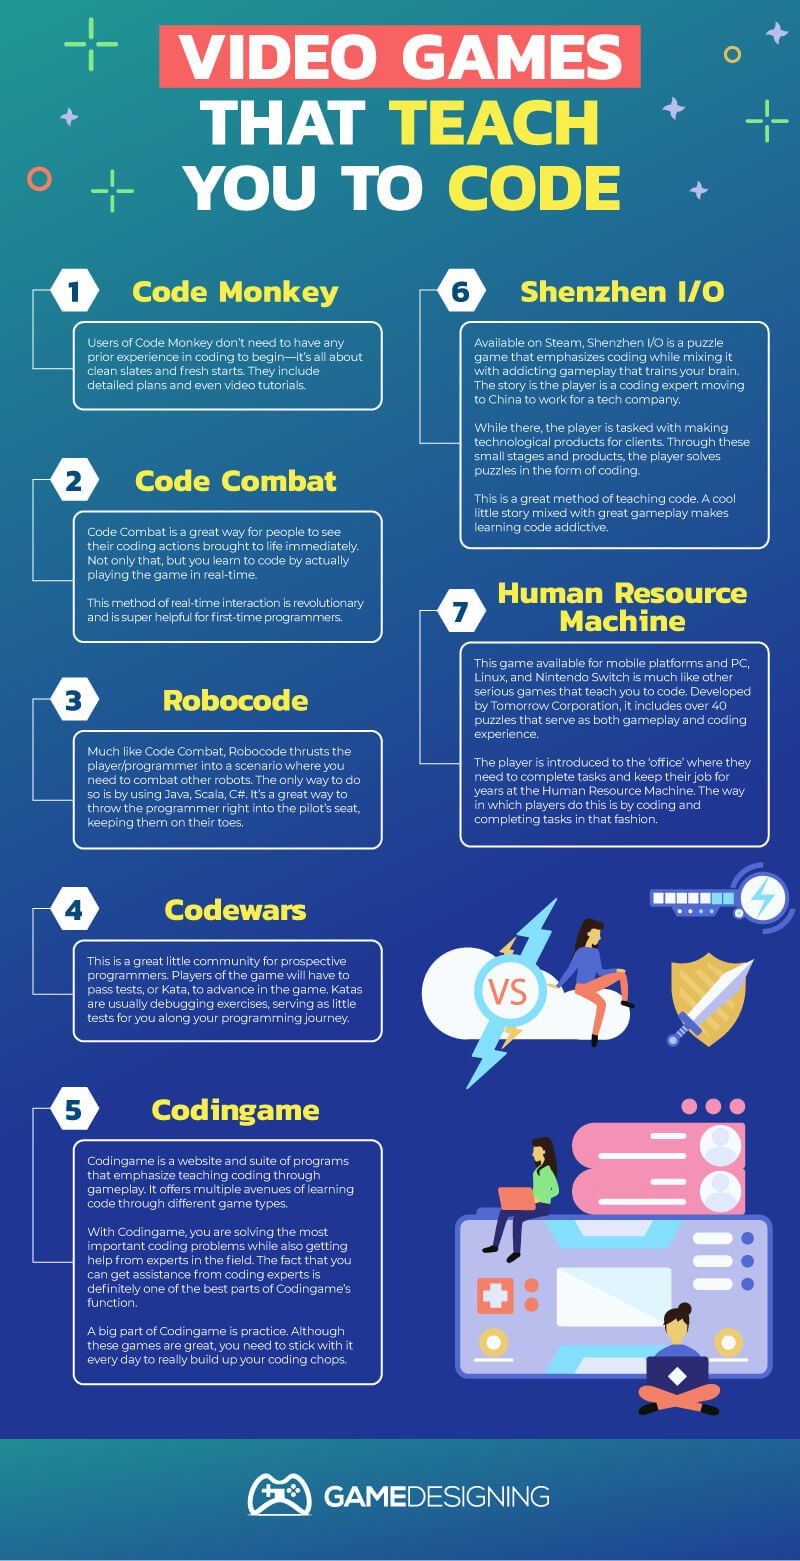 Fund Video Games For Aspiring Coders